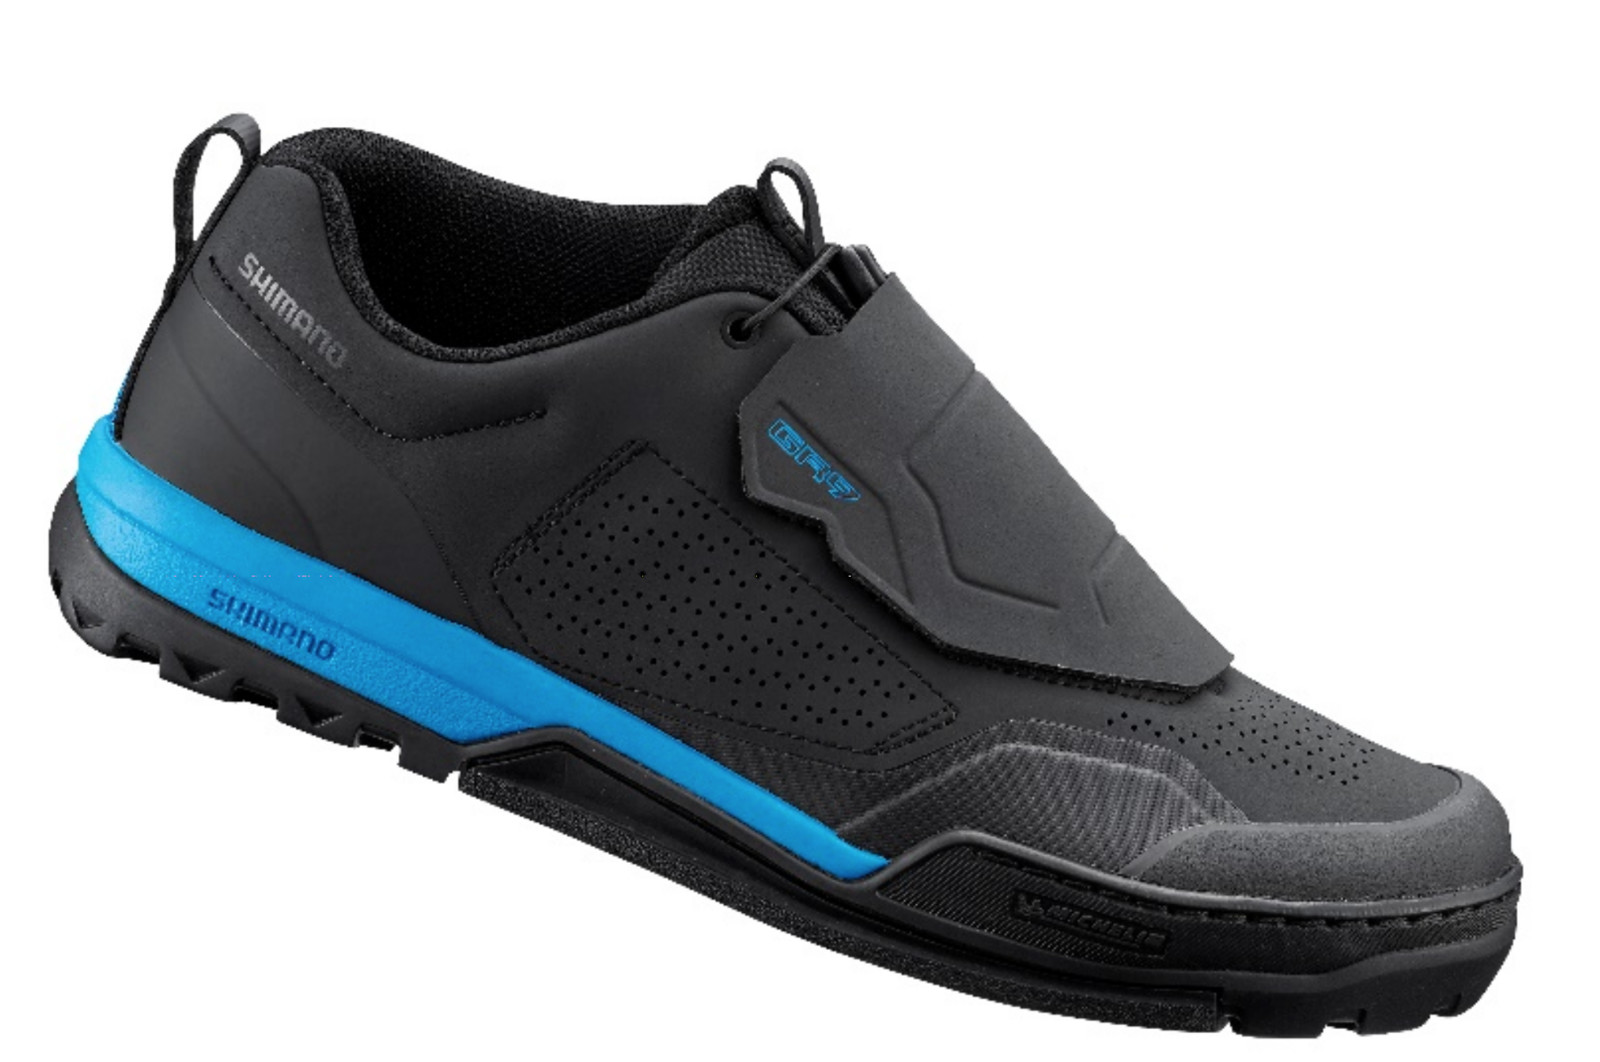 Shimano Launches Updated 2020 Footwear Line